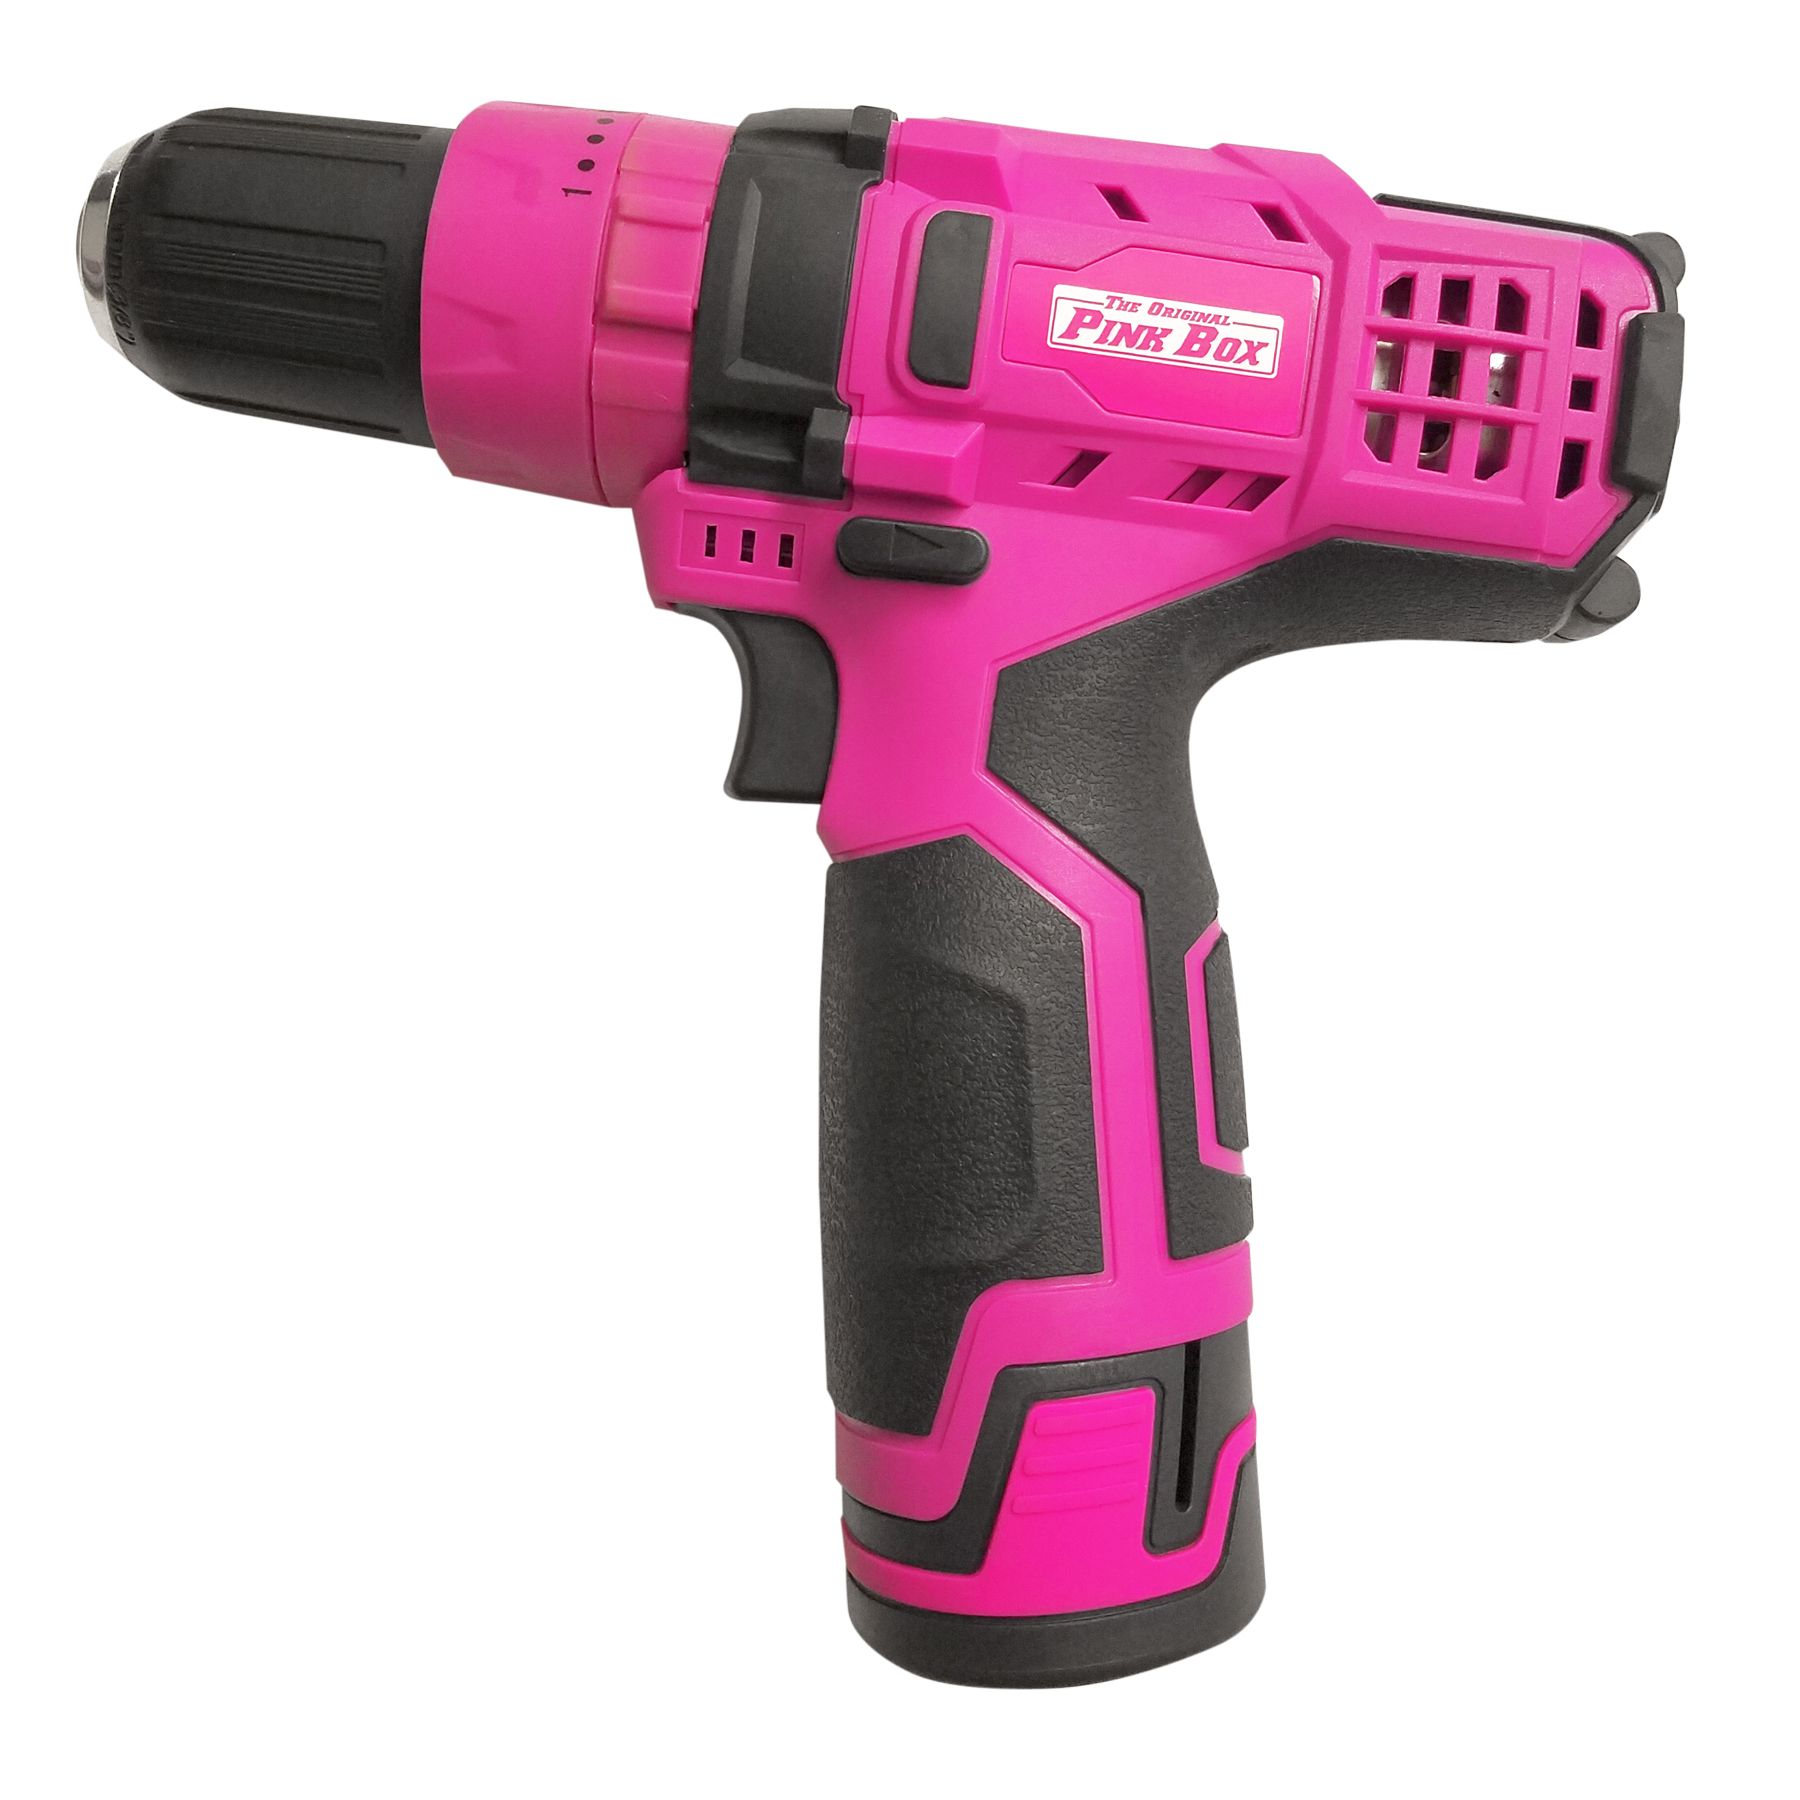 12 Volt Lithium Ion Cordless Impact Drill And Bits Cordless Impact Drill Pink Tools Purple Timberland Boots